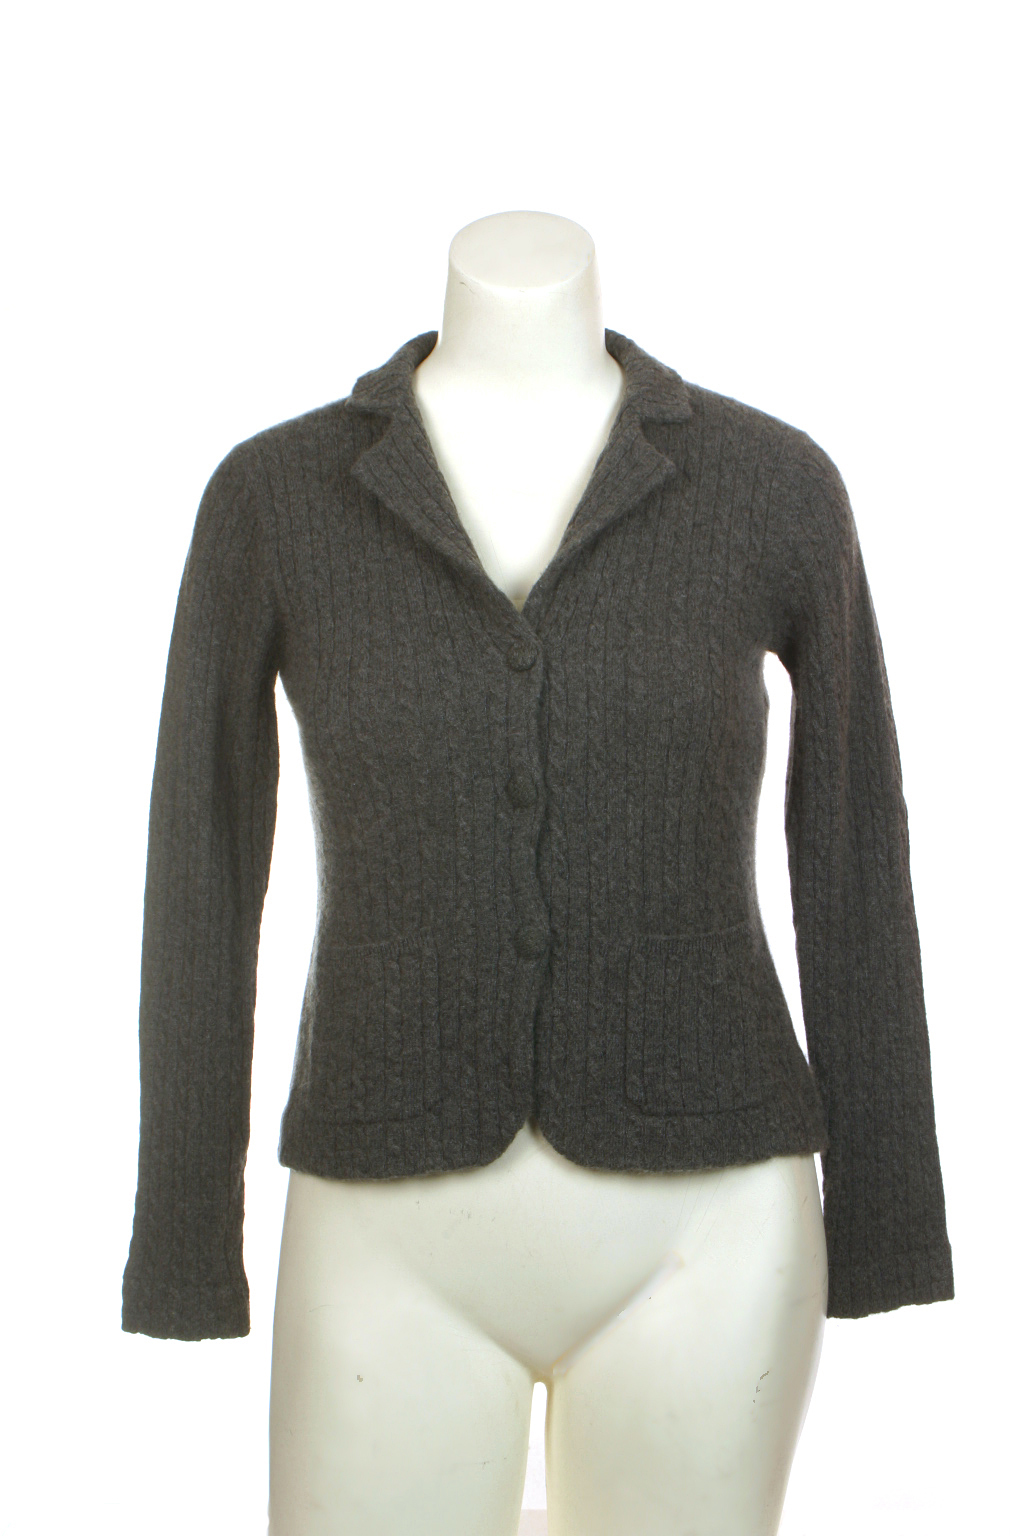 Thrift Shop Sweater Second Hand Wendy B Gray Cashmere Jacket Petite PS